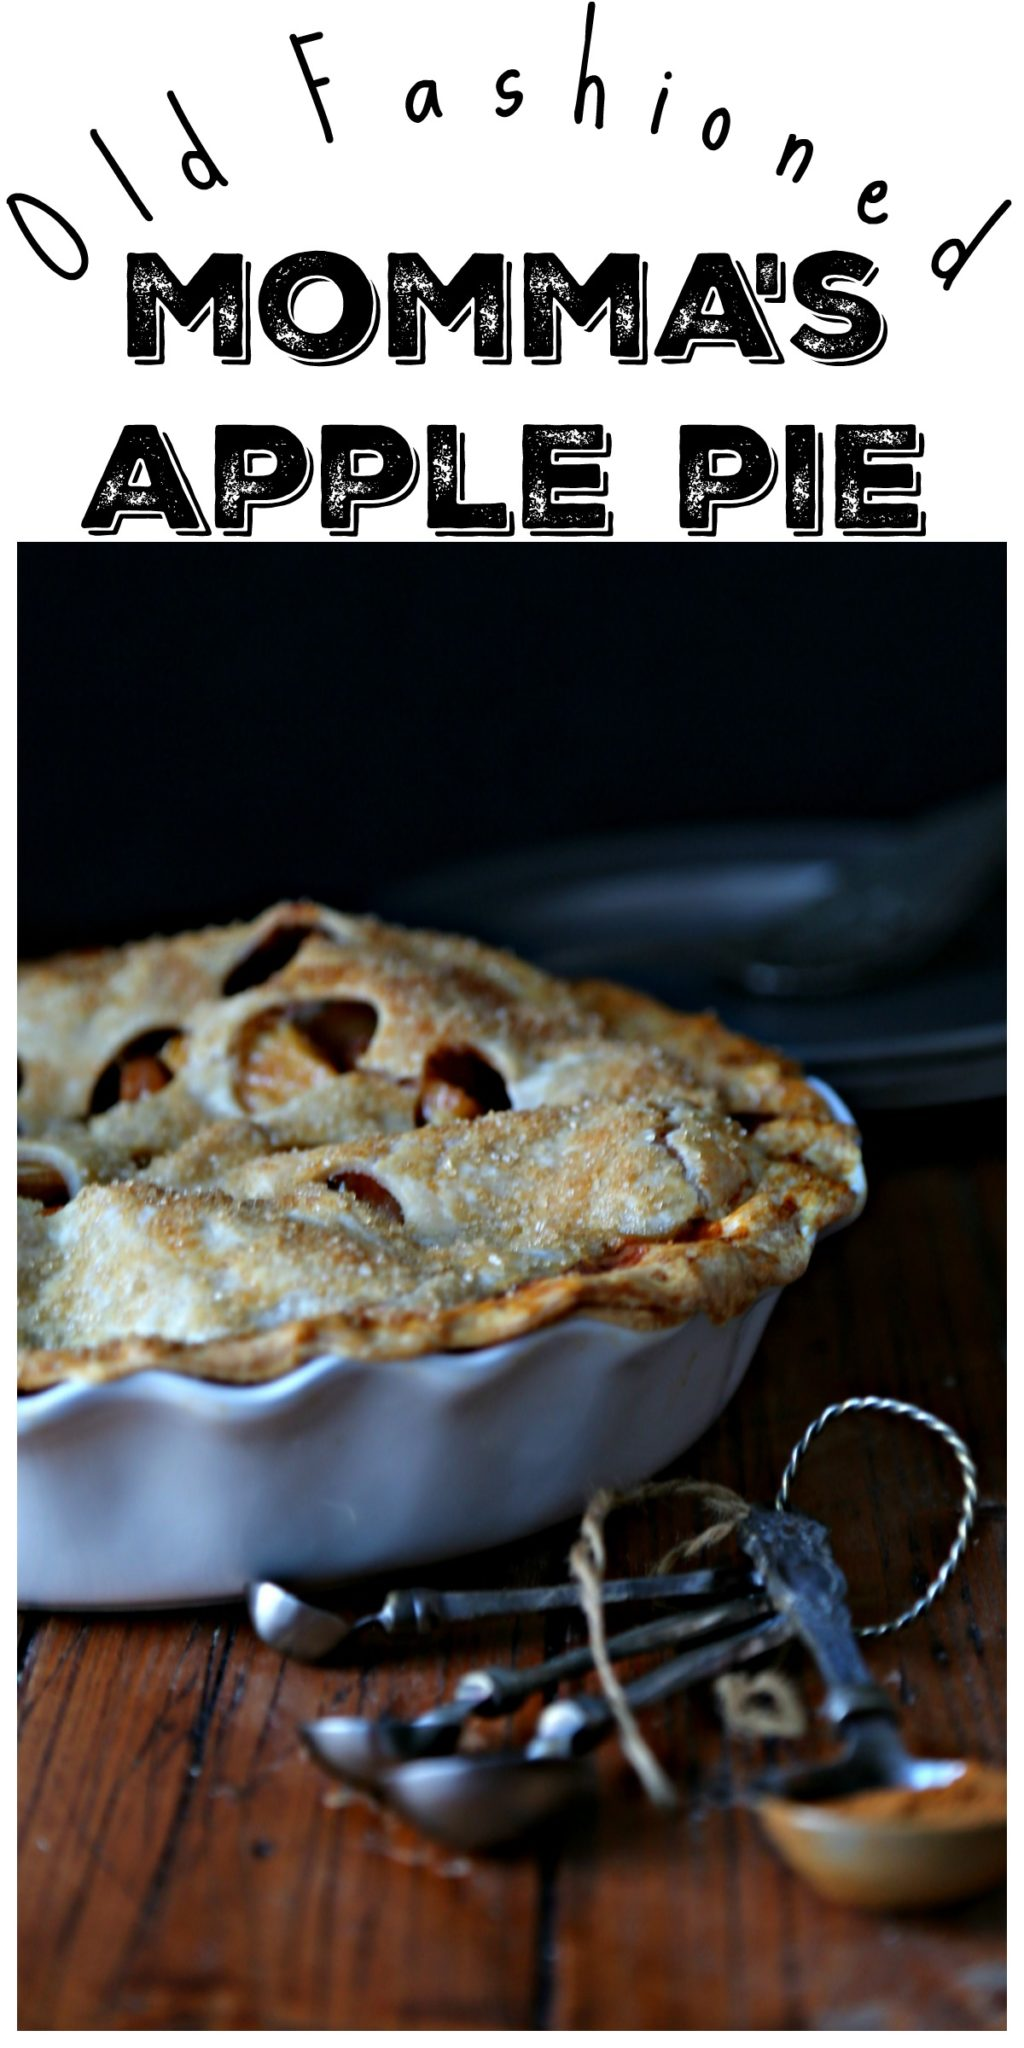 Old Fashioned Homemade Apple Pie with a buttery flaky crust. This pie is busting at the seams with slices of apples and spices. #pie #apple #applepie #desserts #thanksgiving #thanksgivingrecipes #vegetarian